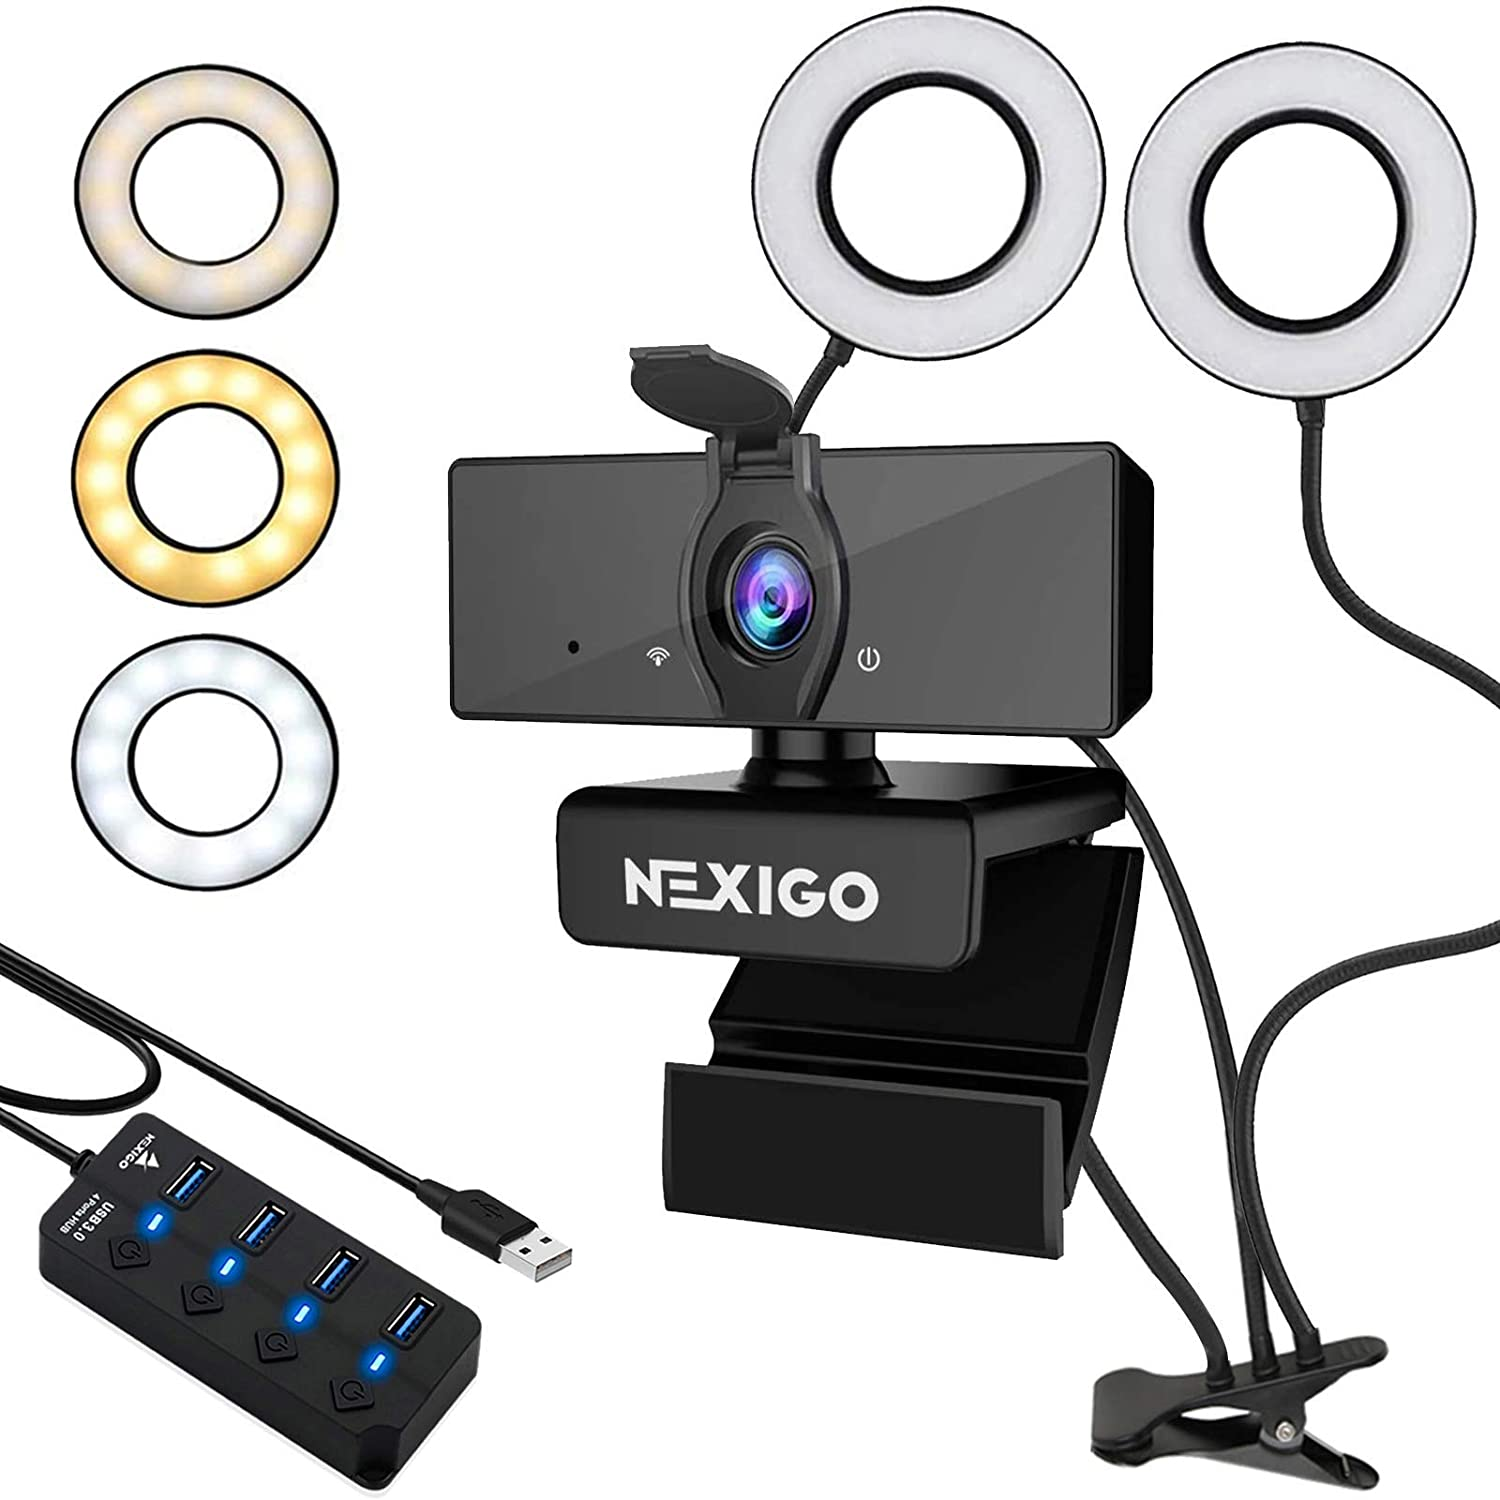 1080P Streaming Webcam with 2ft USB Hub Switch, Microphone, Dual 3.5 Inch Selfie Ring Light, Mount Stand, and Privacy Cover, for Streaming Online Class, Zoom Skype MS Teams, PC Mac Laptop Desktop